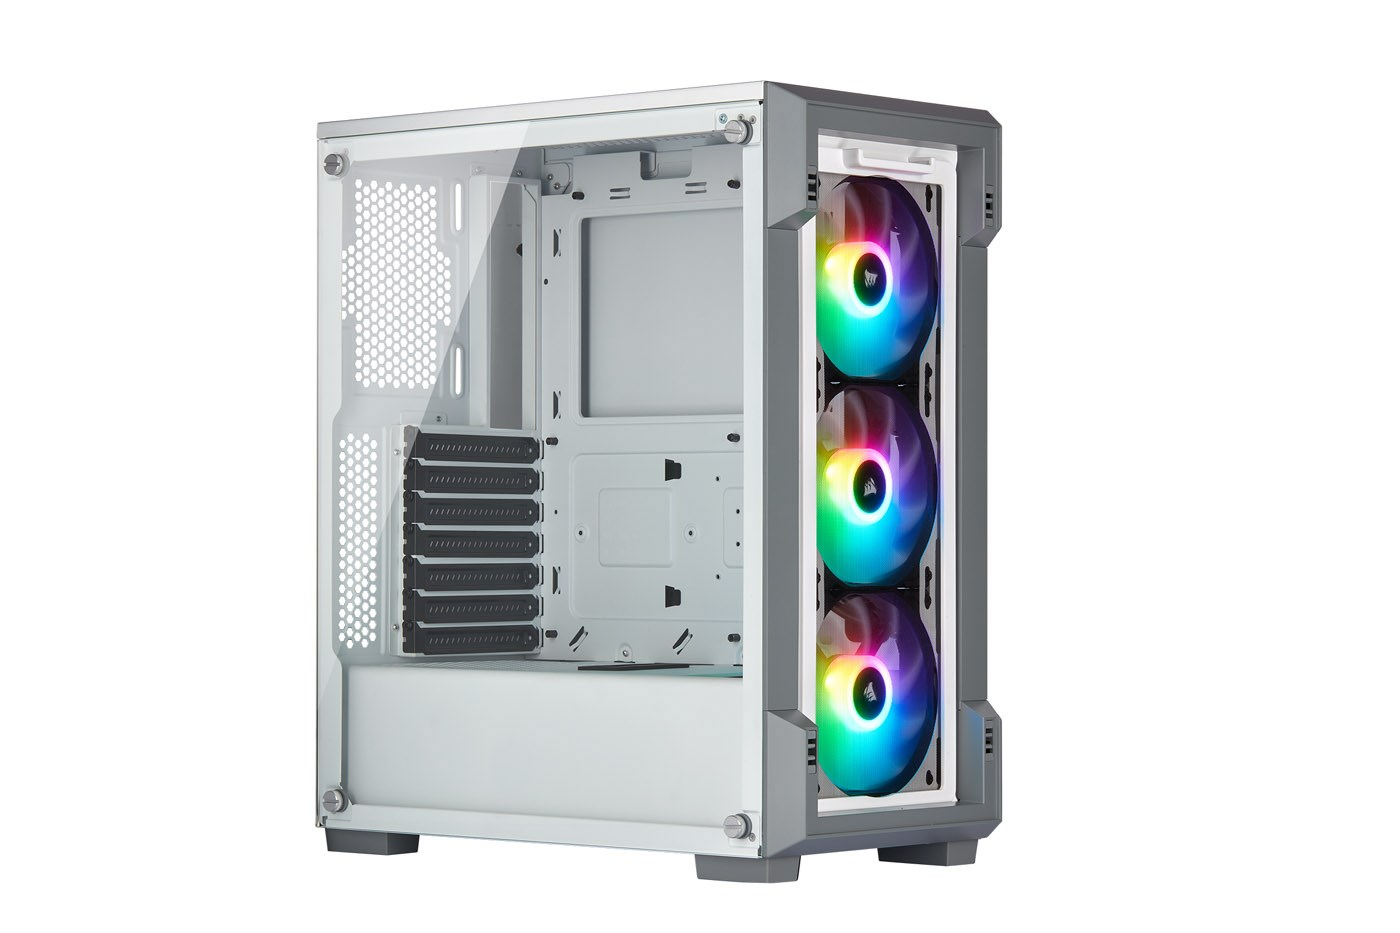 Corsair iCUE 220T RGB Airflow Gaming Case - White - CC-9011174-WW